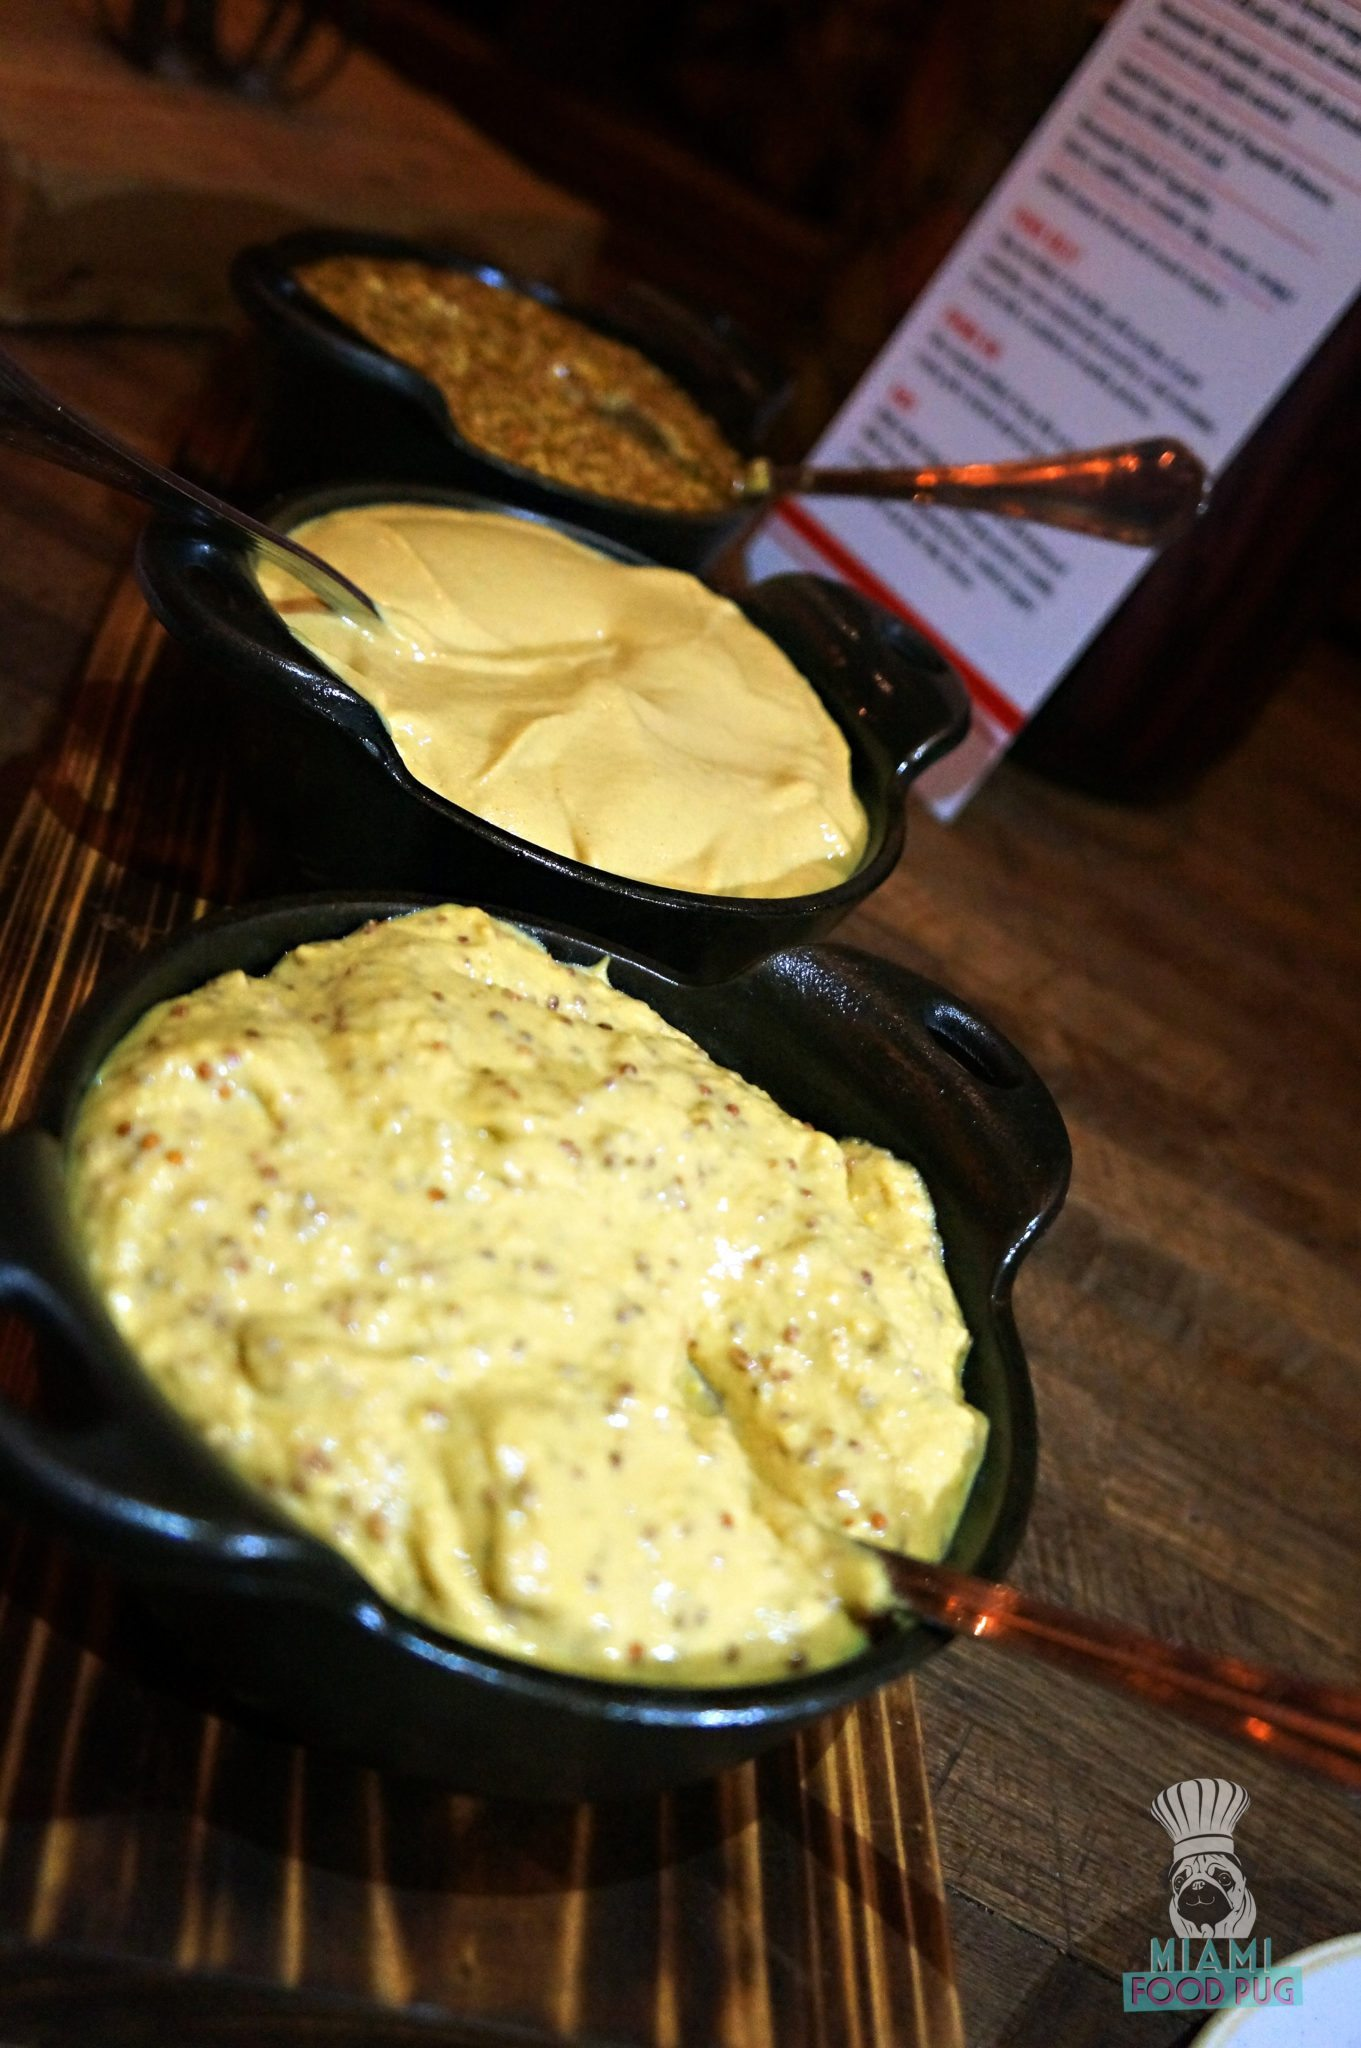 Smithfield's Chef's Table Mustards